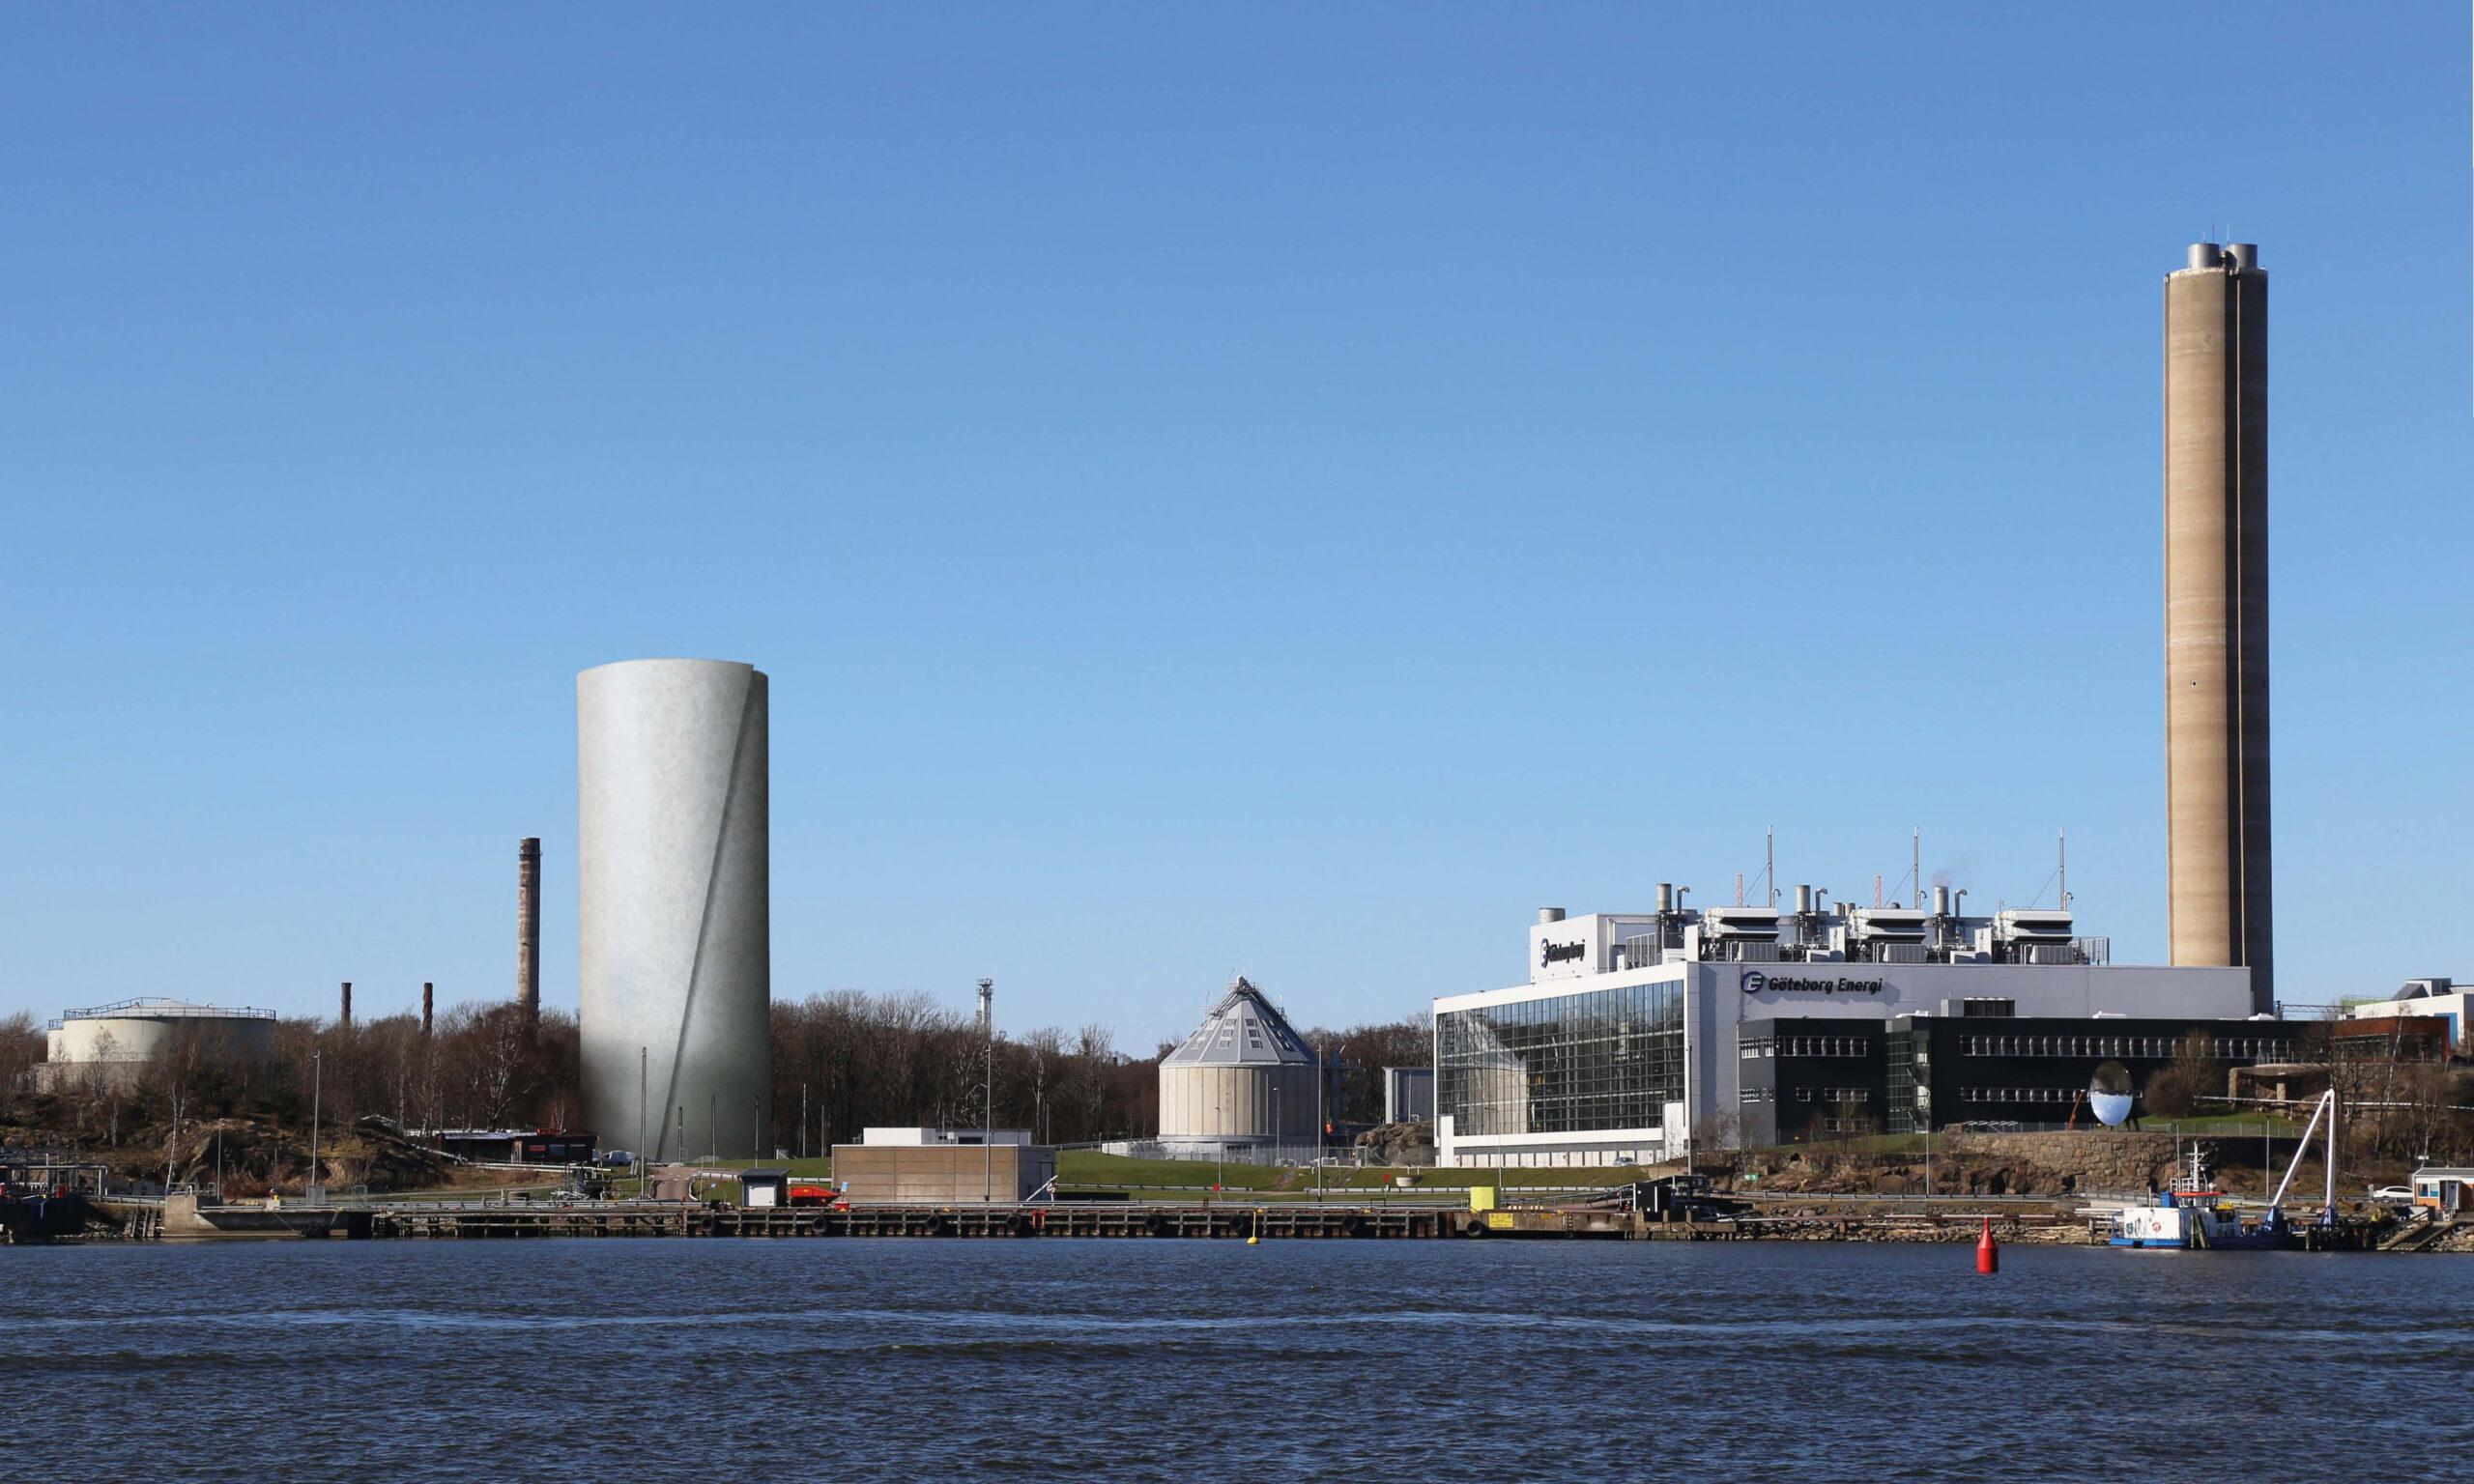 A distric heating facility in Gothenburg, a tall and wide tower to the left; a tall and slim tower to the right.